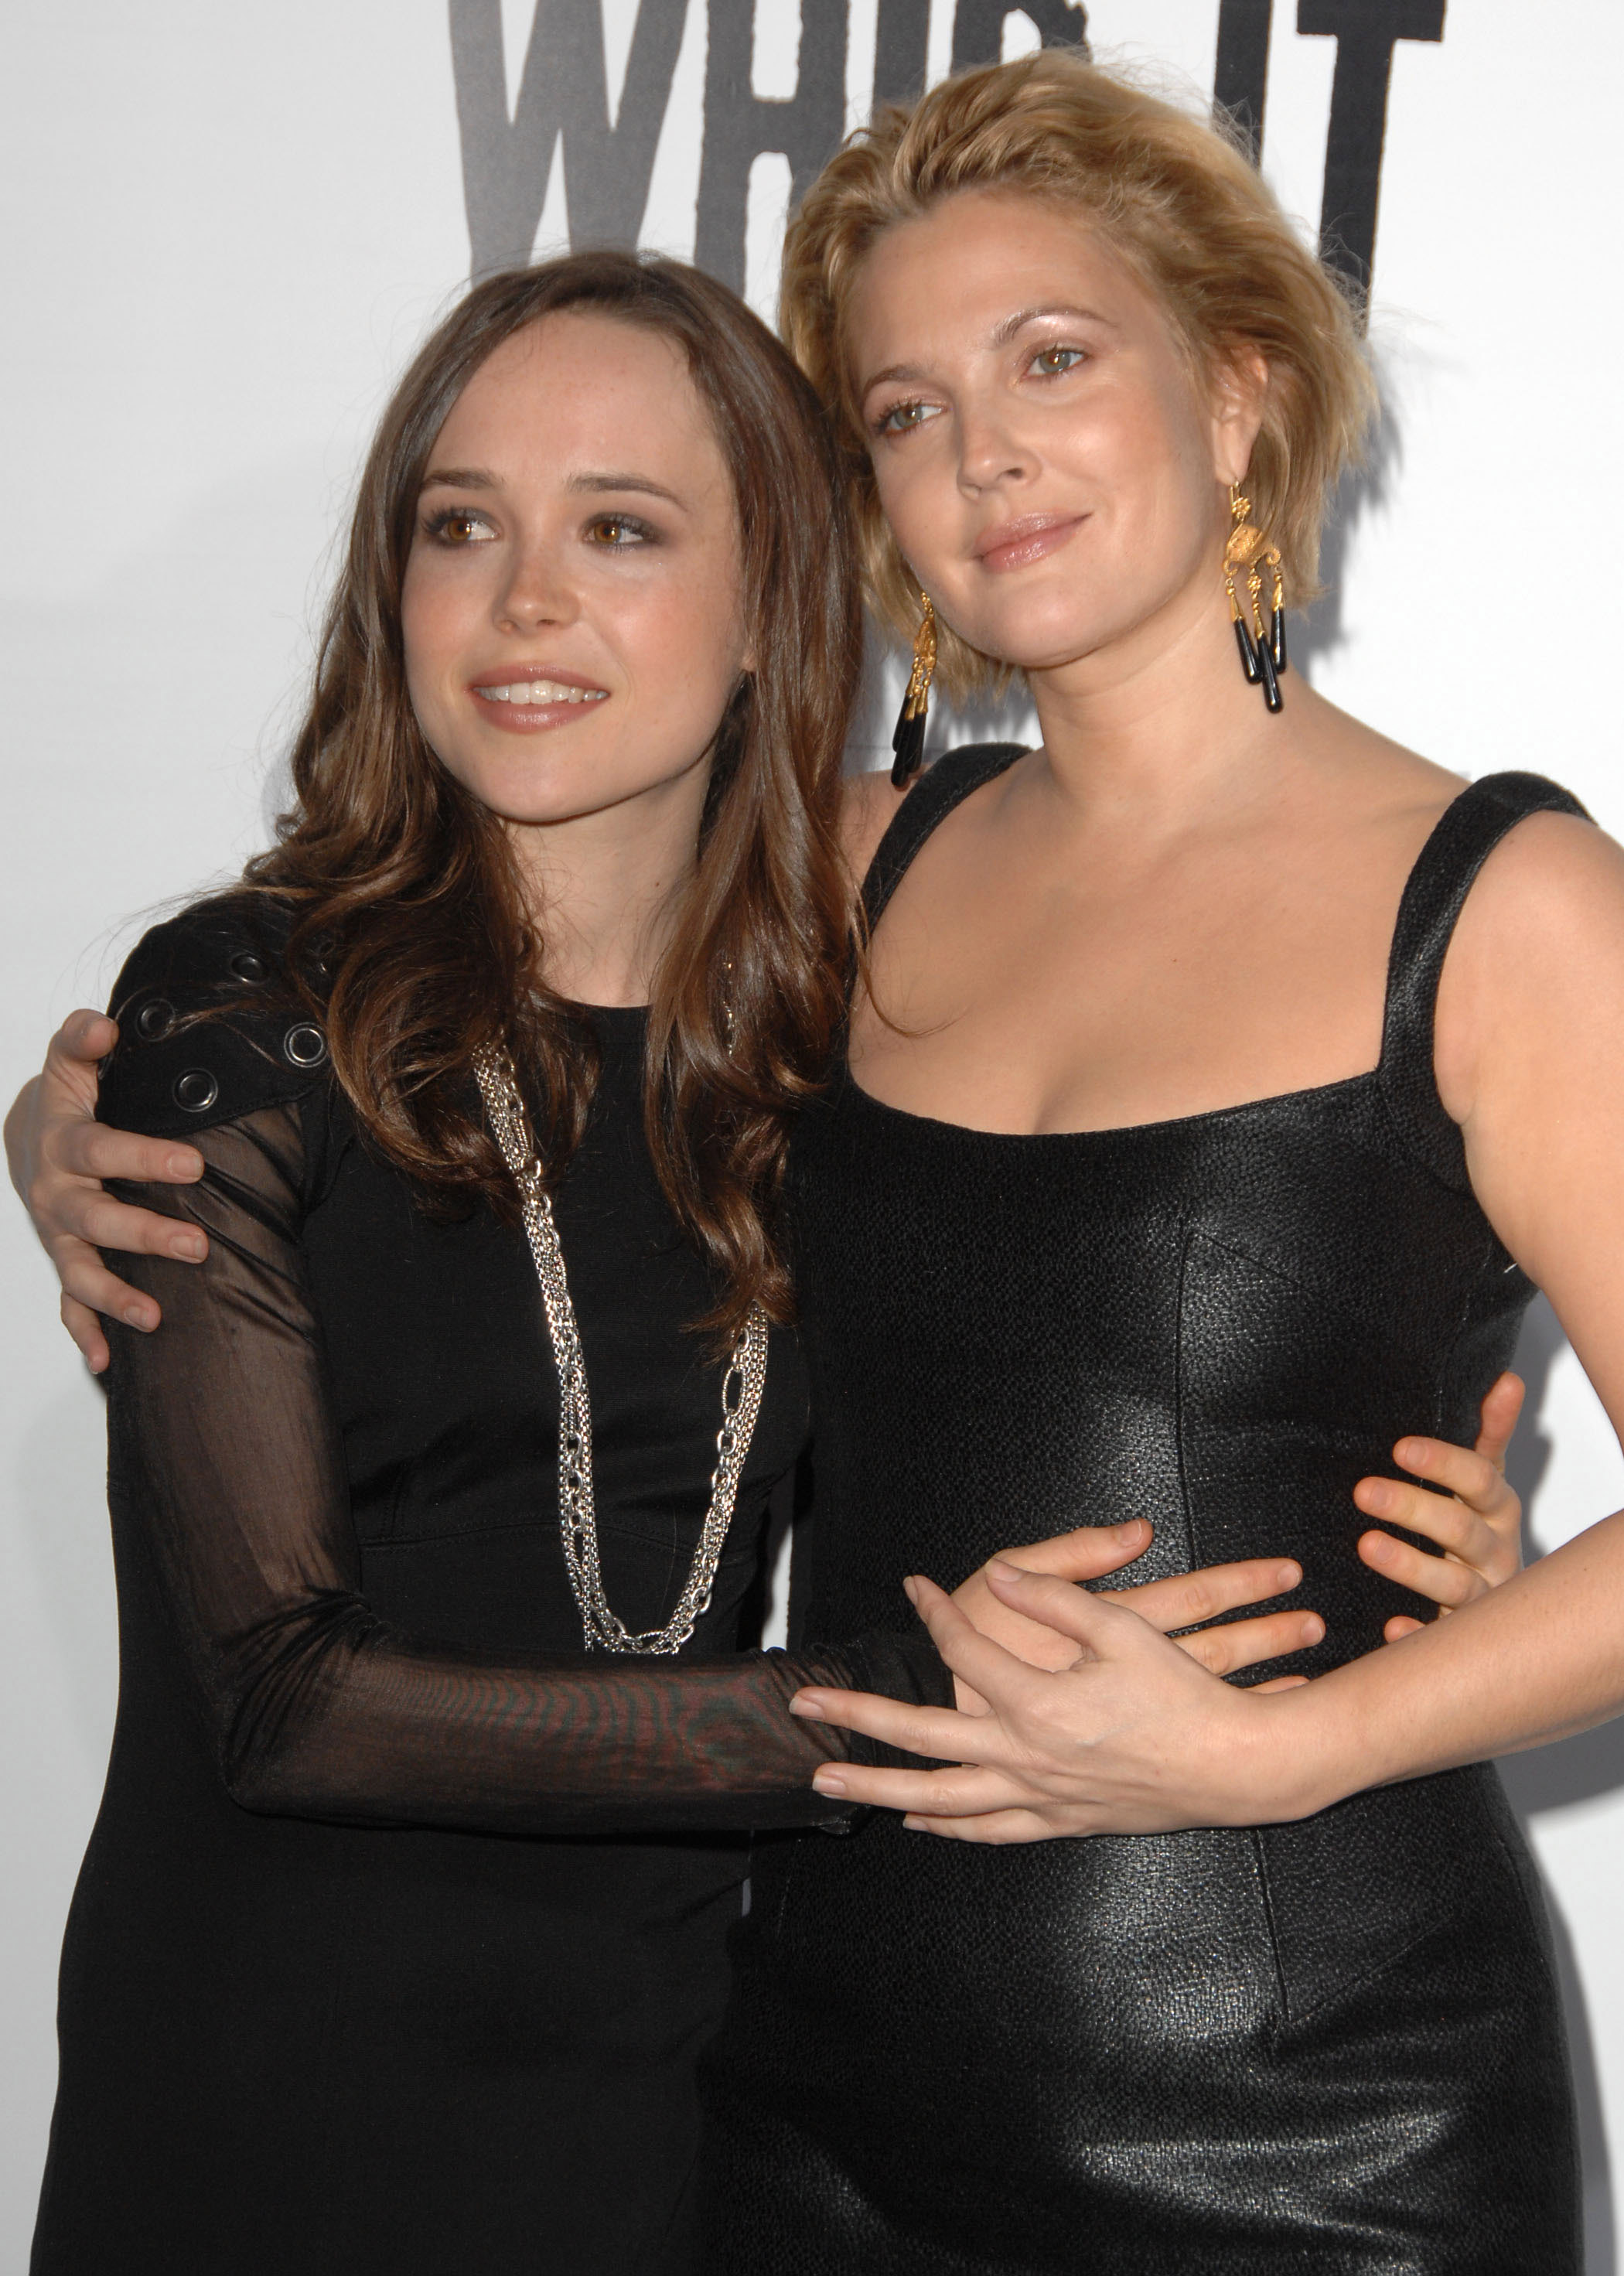 ellen page and drew barrymore relationship